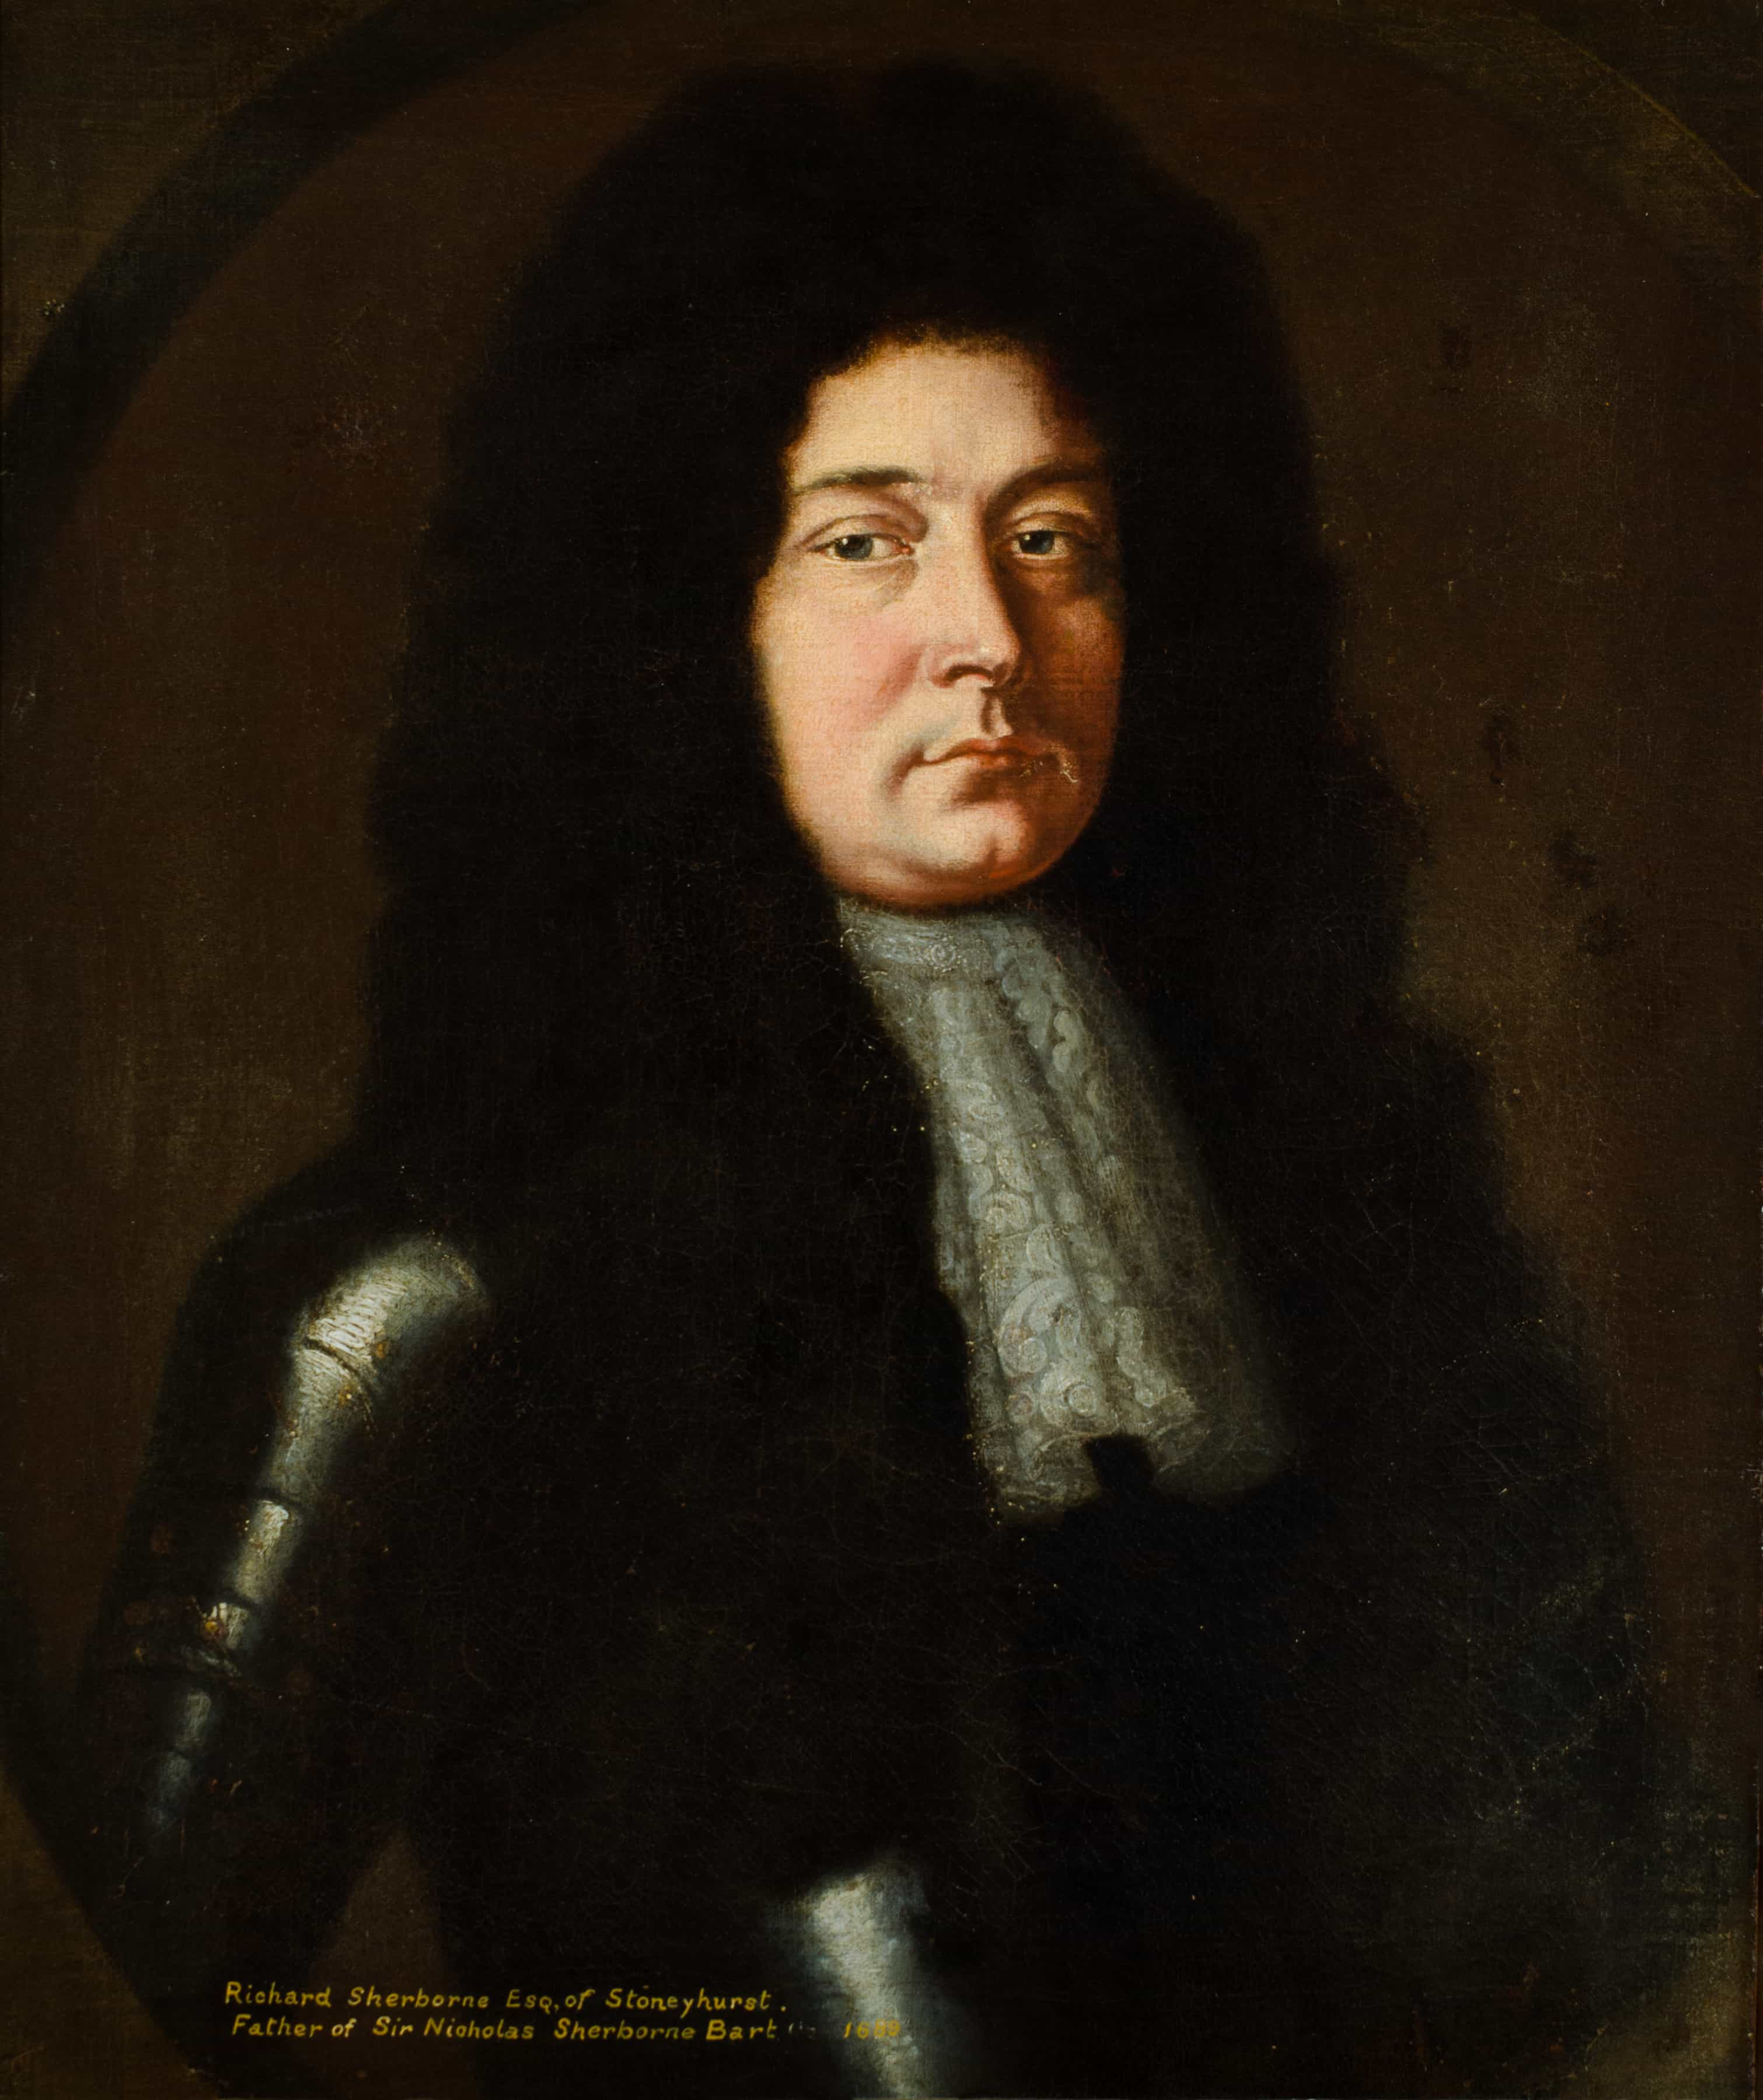 Bust portrait of a young white man in shiny black armour, with a lacy white neckerchief. He appears to have a long black wig. He looks directly at viewer unsmiling. Inscription: Richard Sherborne.